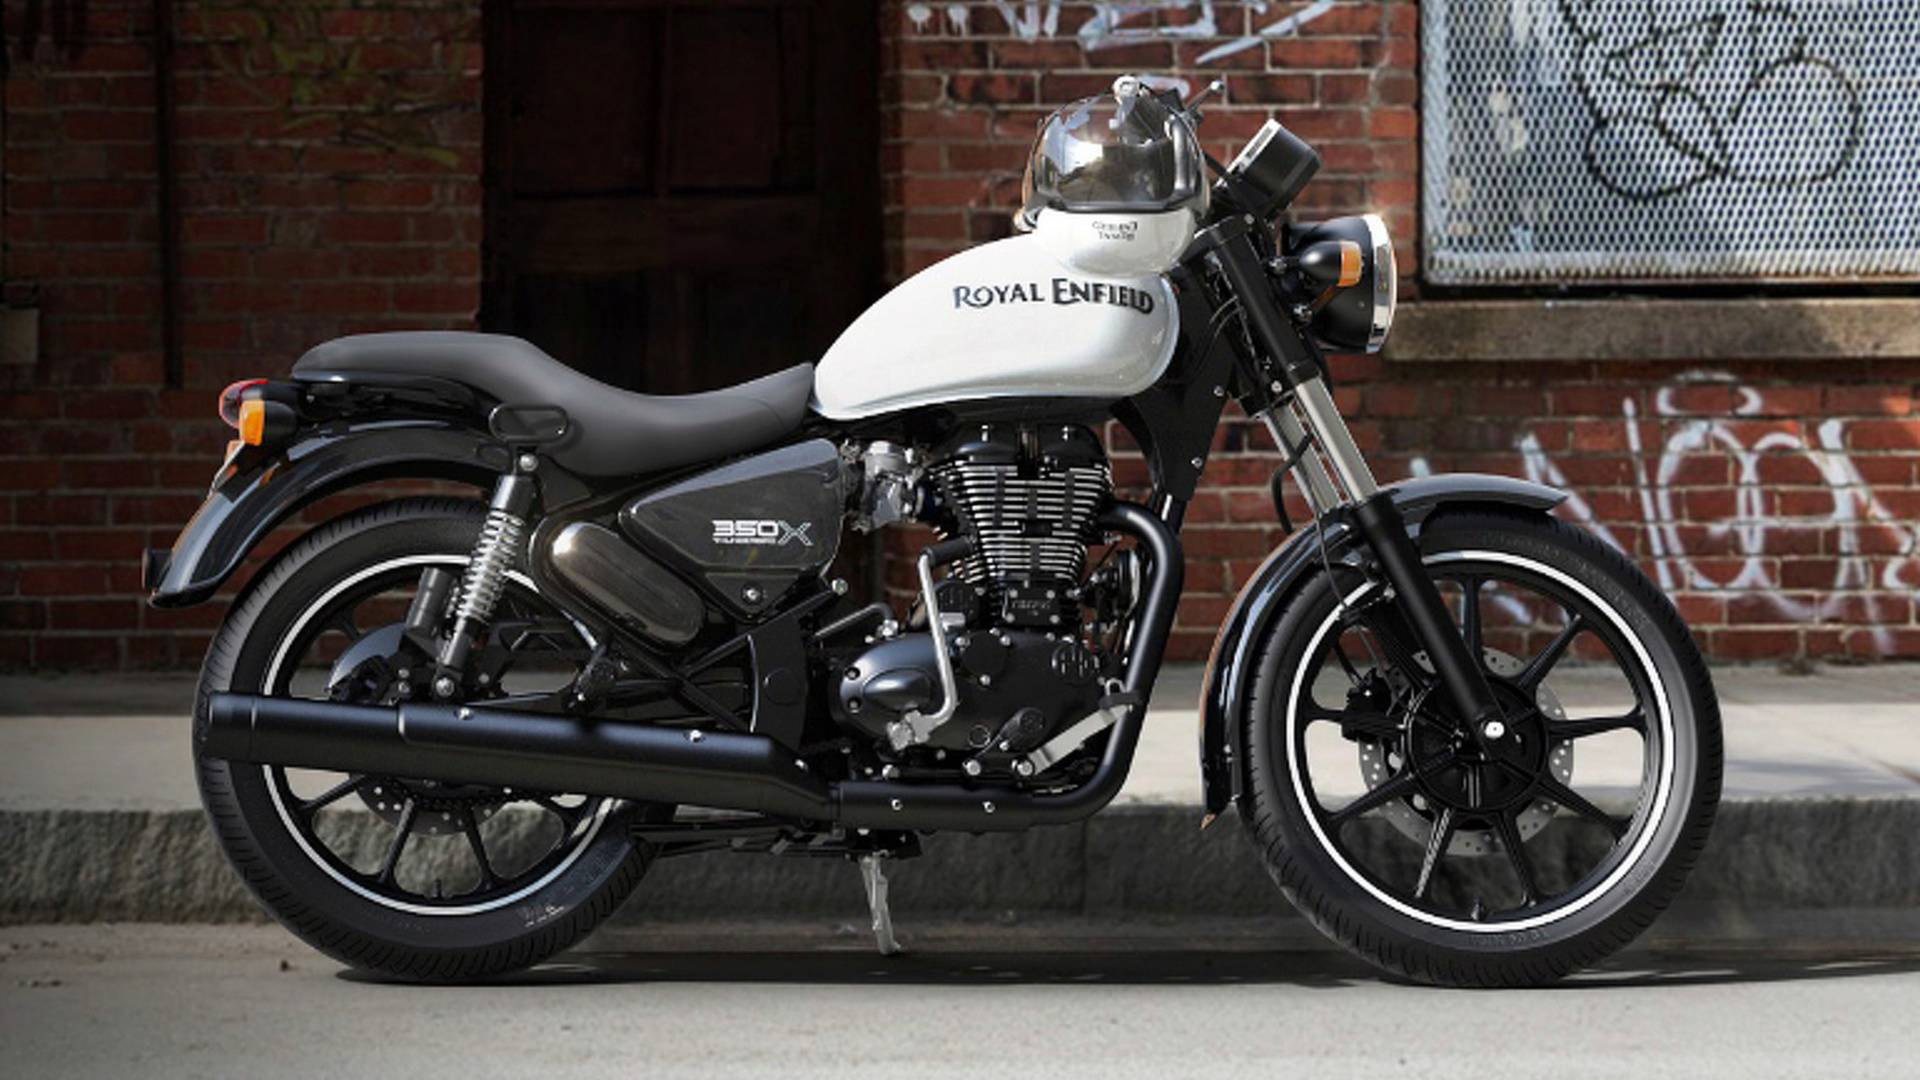 Is Royal Enfield Grooming A New Model To Launch At EICMA?